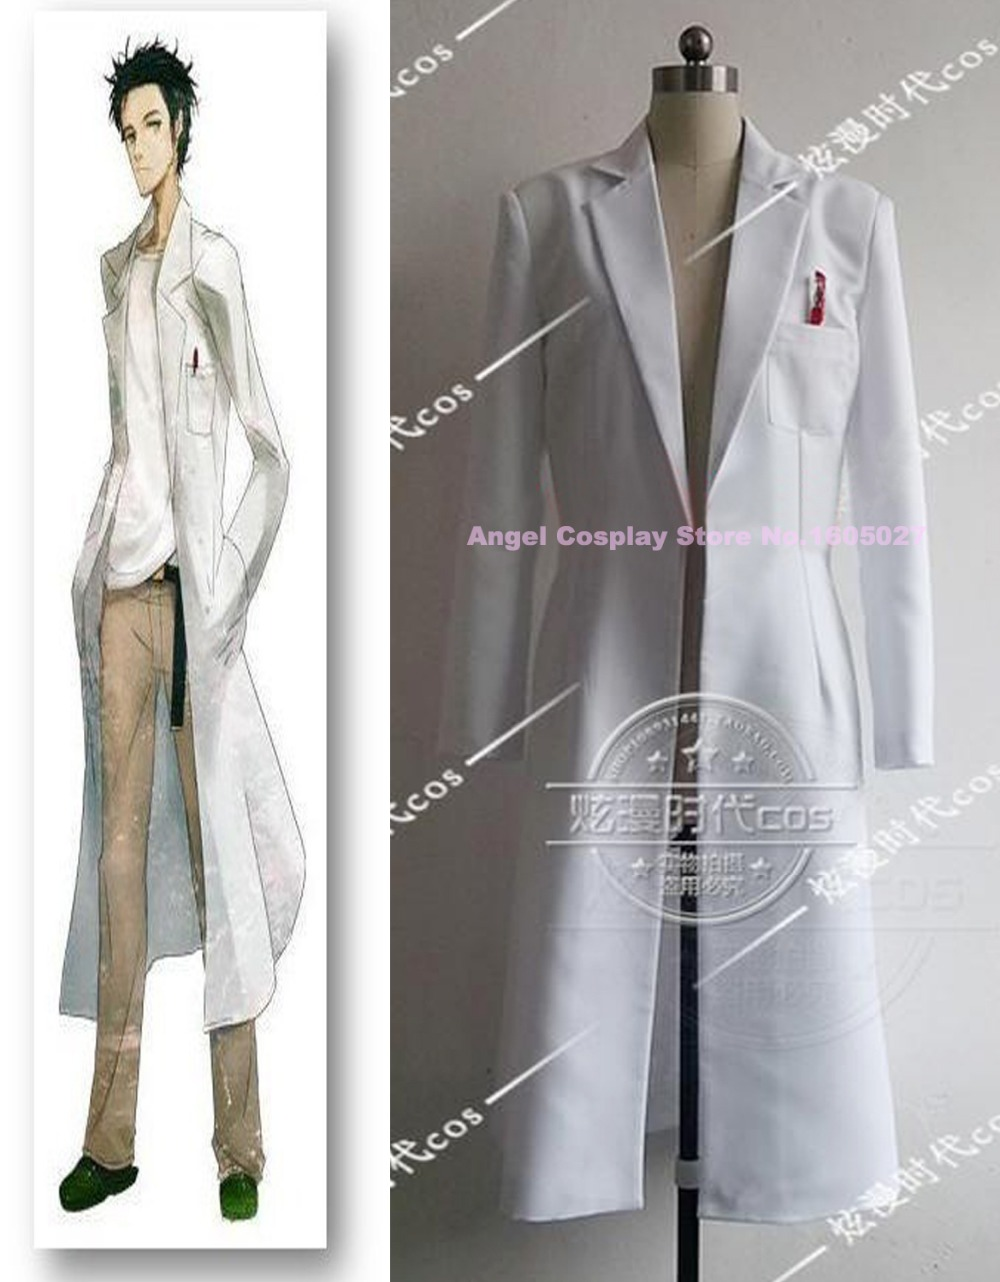 2016 Bargins!! New Anime Steins Gate Okabe Rintarou Cosplay Costume Coat Mad Scientist White Jacket costume free shipping